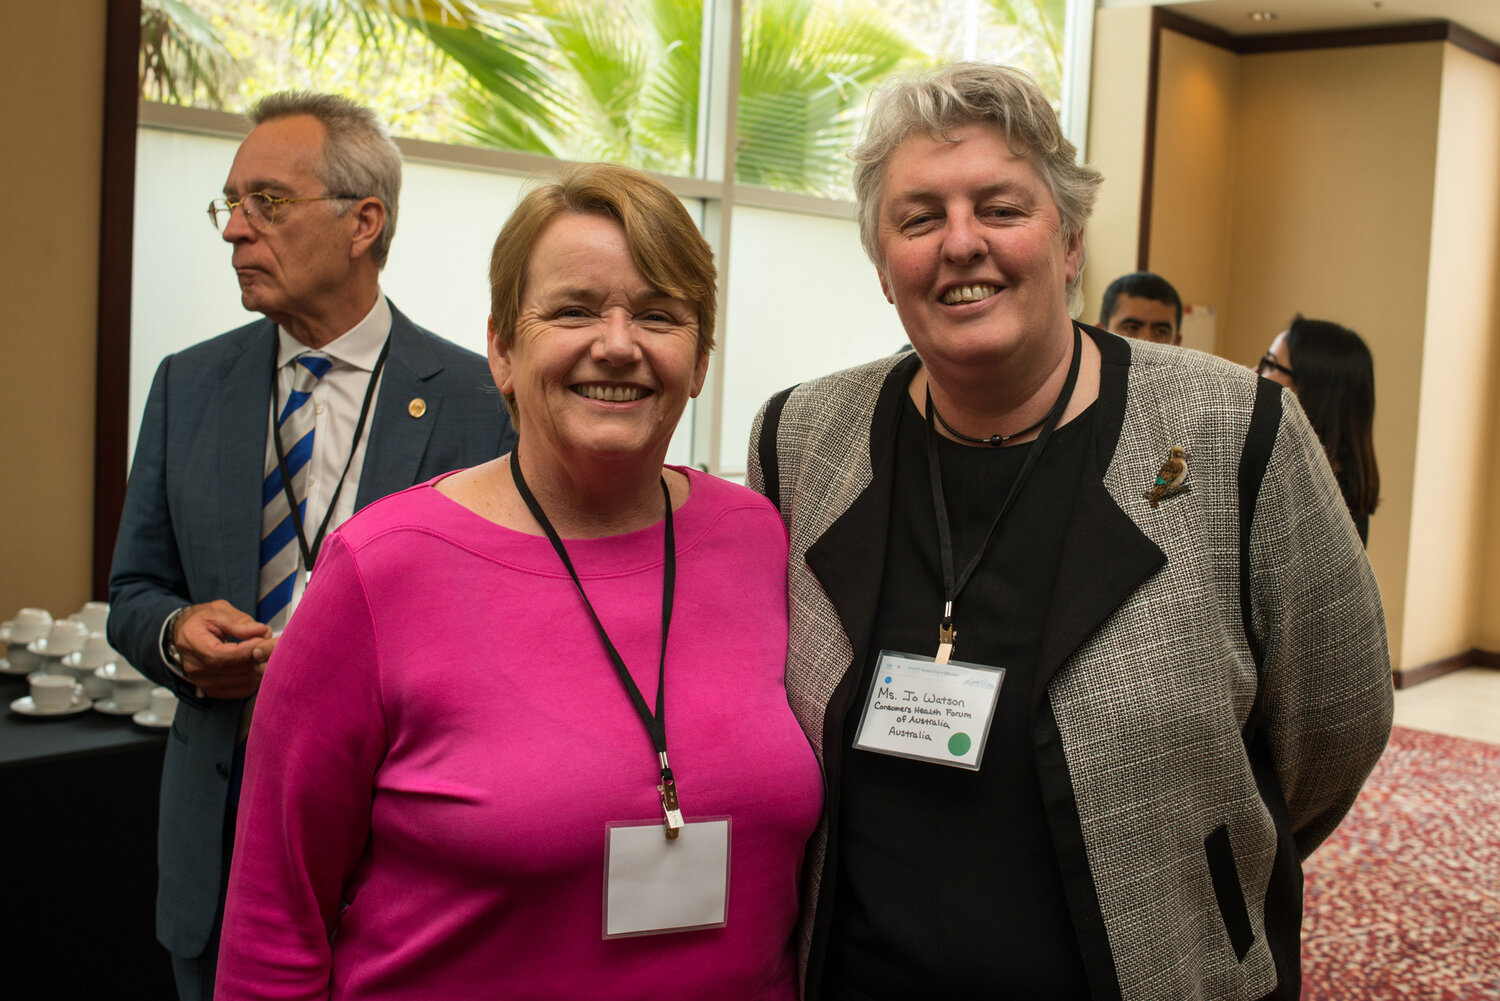 Alison Verhoeven from Australian Healthcare and Hospitals Association (left), Jo Watson from Consumer Health Forum (right), and Andreas Loefler, Australian Orthopaedic Association Past President (background)